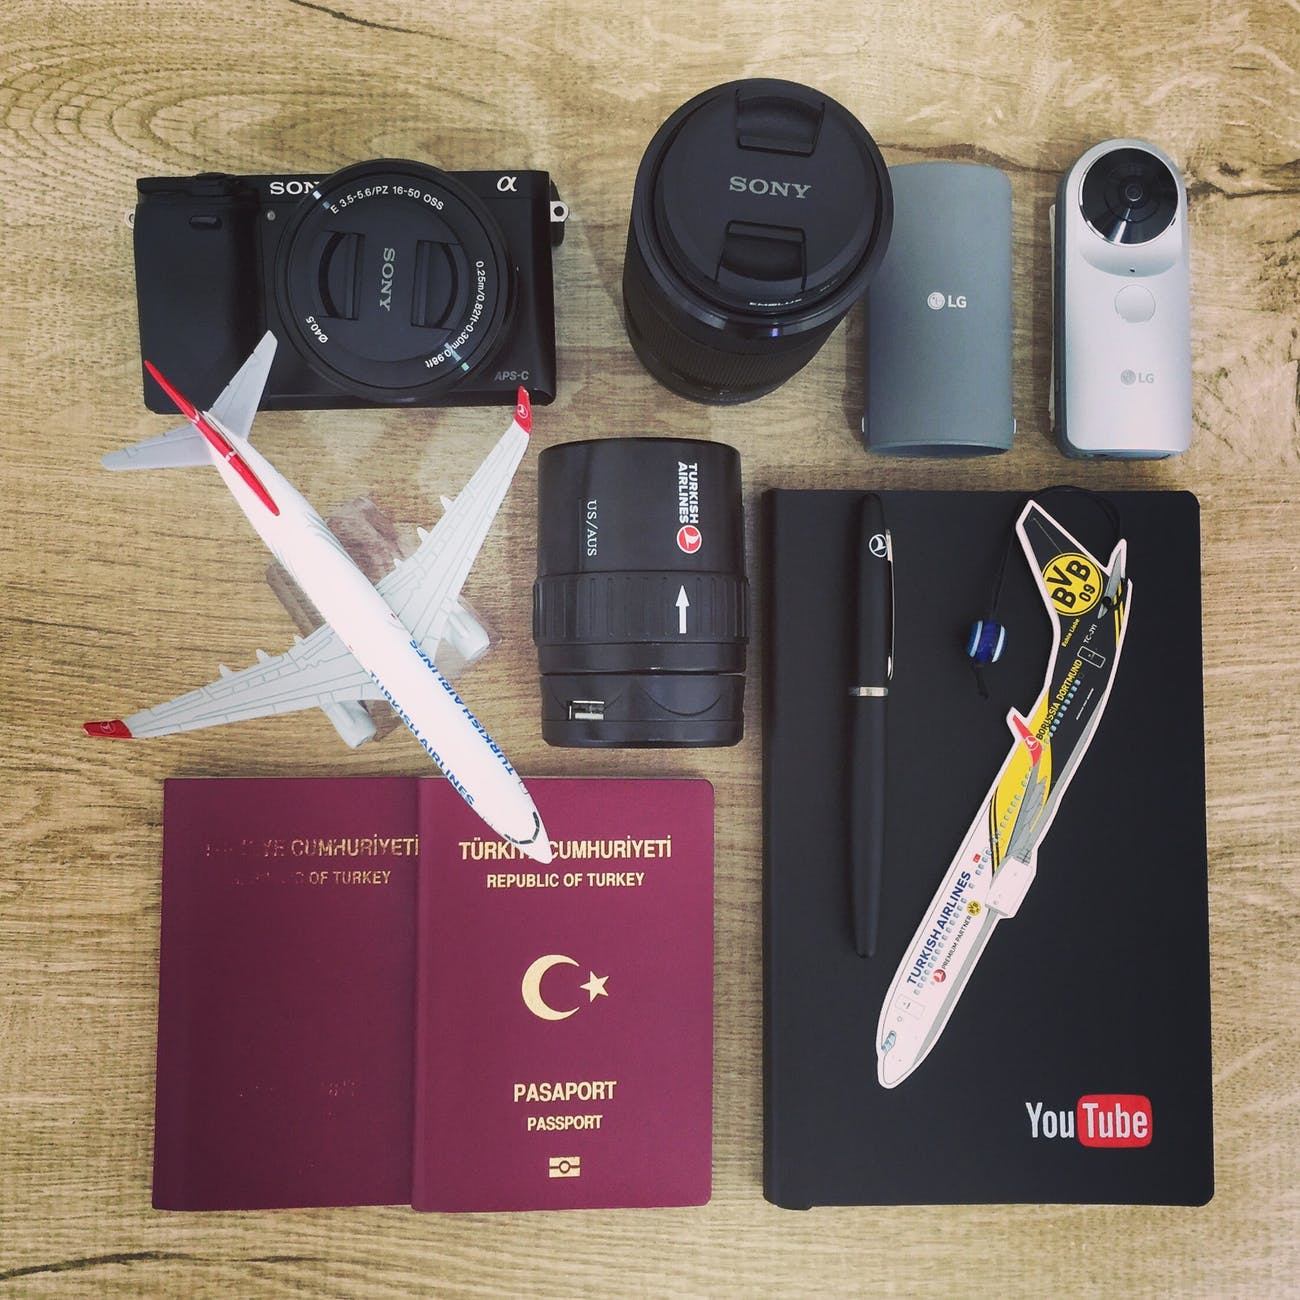 Digital Must haves for your Honeymoon